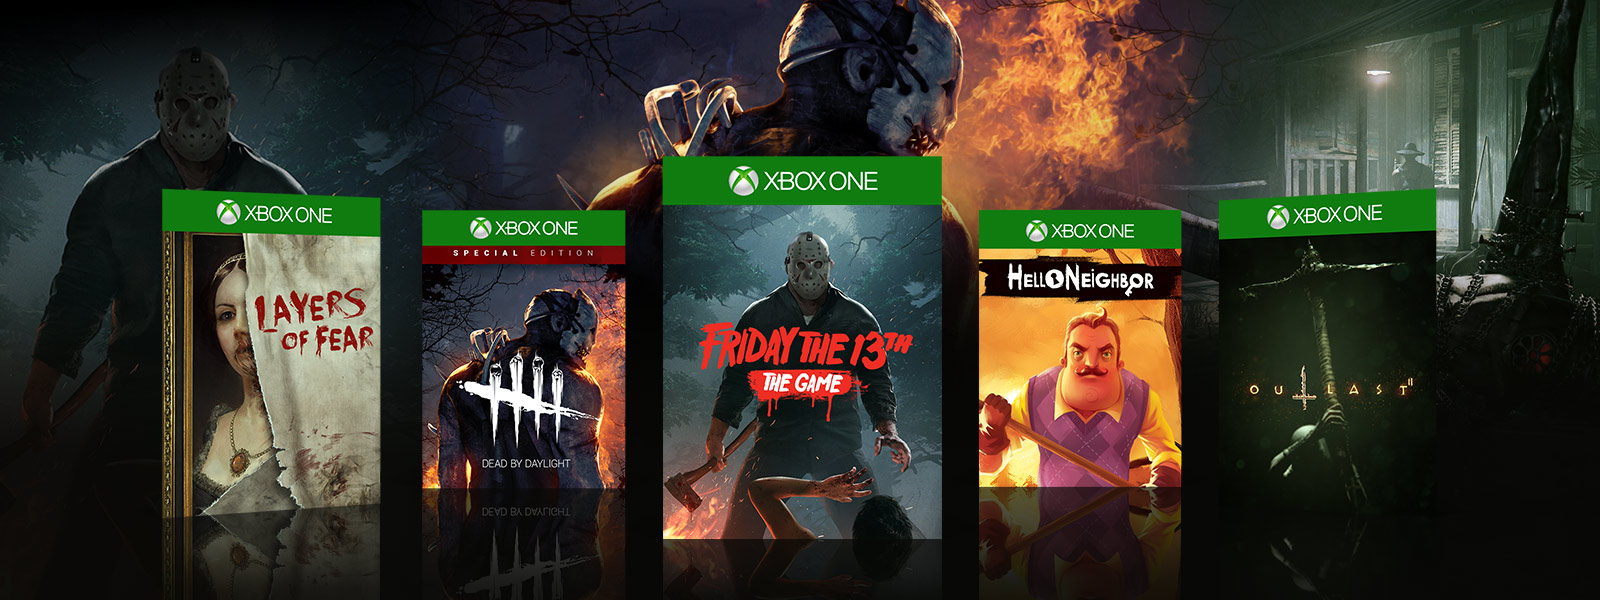 Layers of Fear Dead by Daylight Friday the 13th Helo Neighbor Outlast boxshots